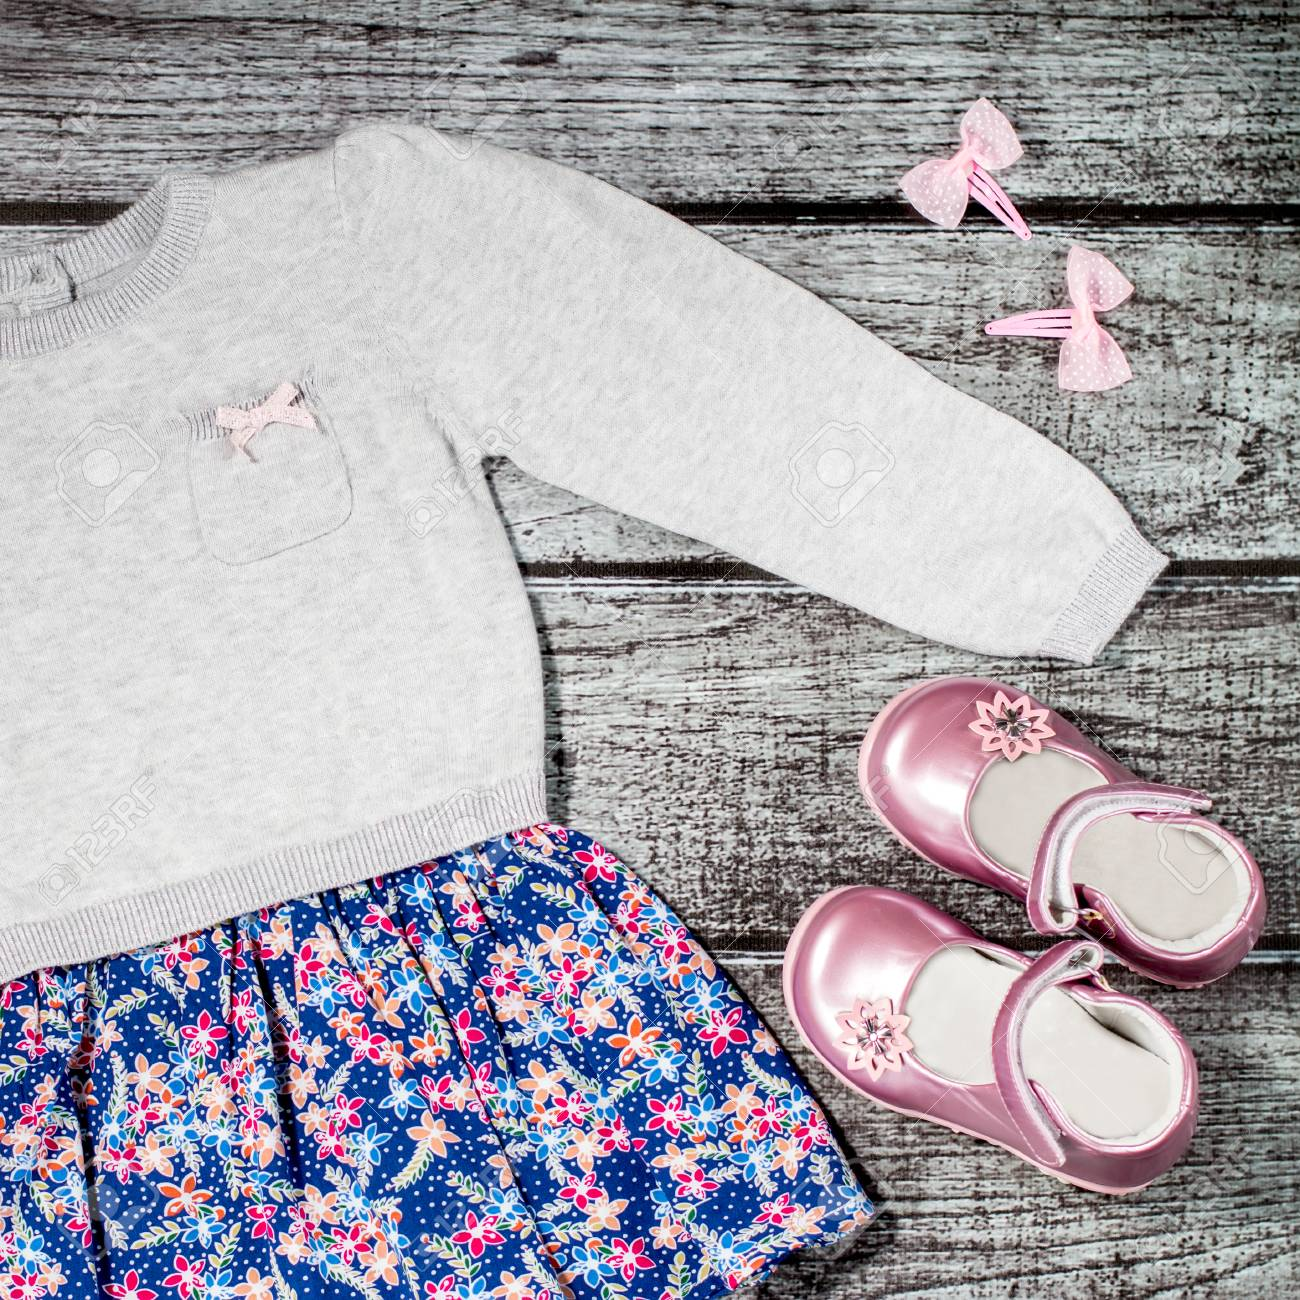 Baby Girl Stylish Casual Clothes Grey And Blue Dress With Flower